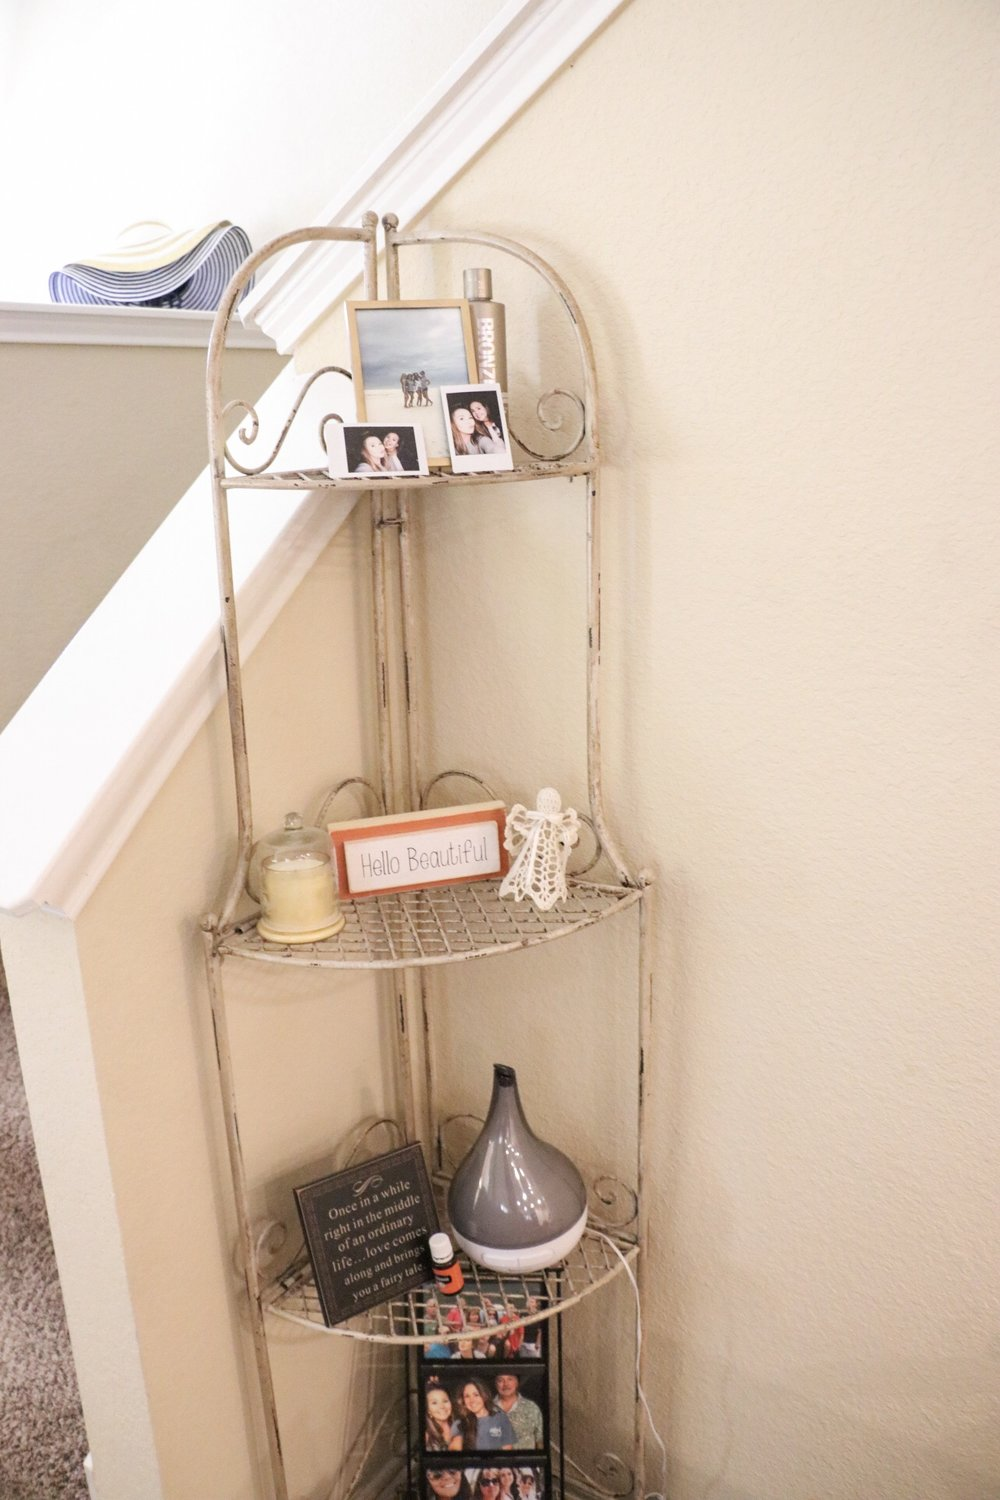 This stand by our stairway is from Hobby Lobby as well! We placed some knick knacks and photos. Mostly from pier one, and Hobby Lobby!